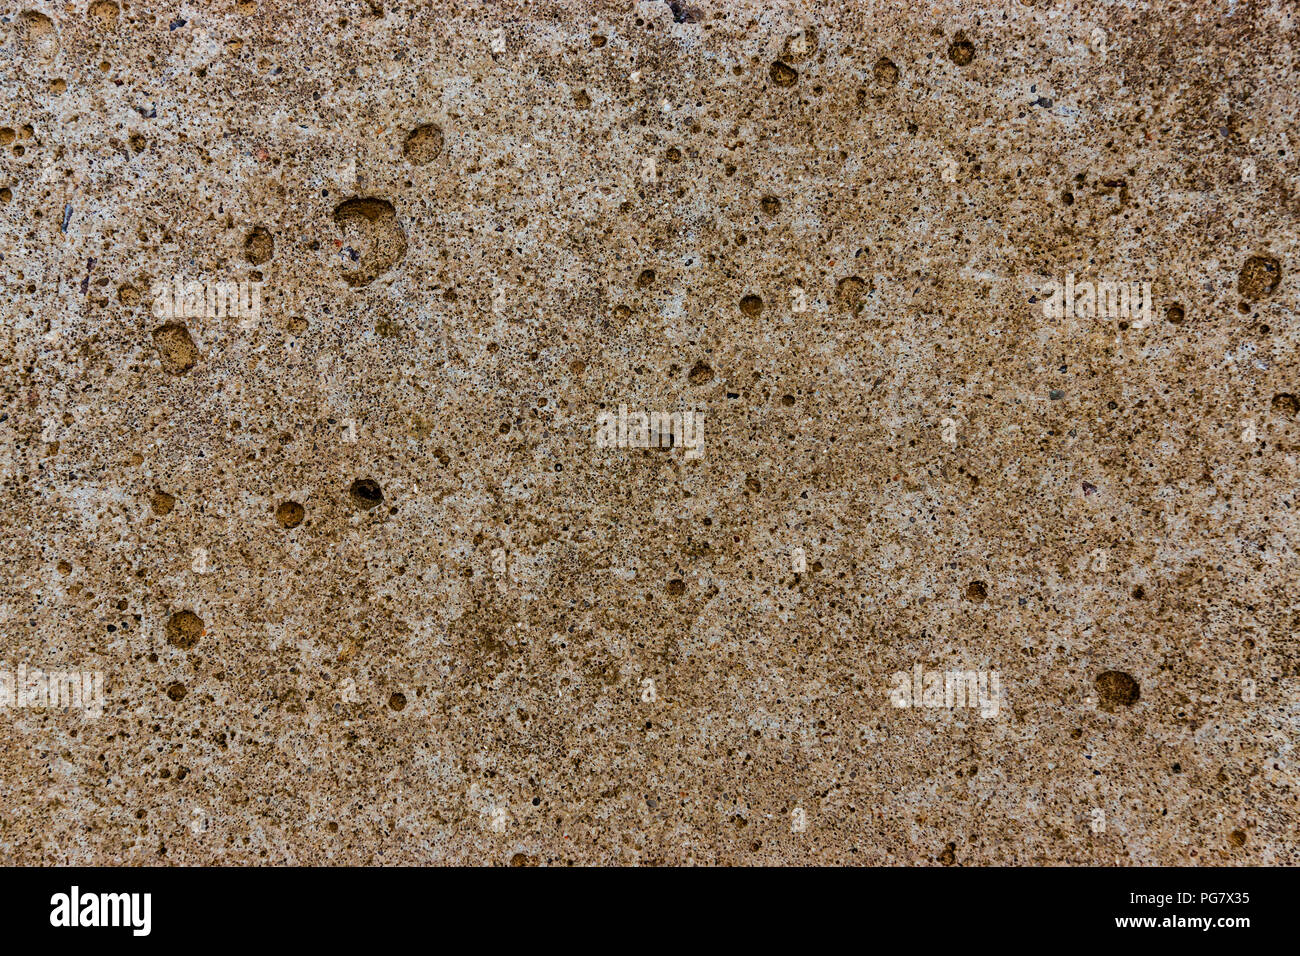 Light Brown Granite Texture Background High Resolution Stock Photography And Images Alamy